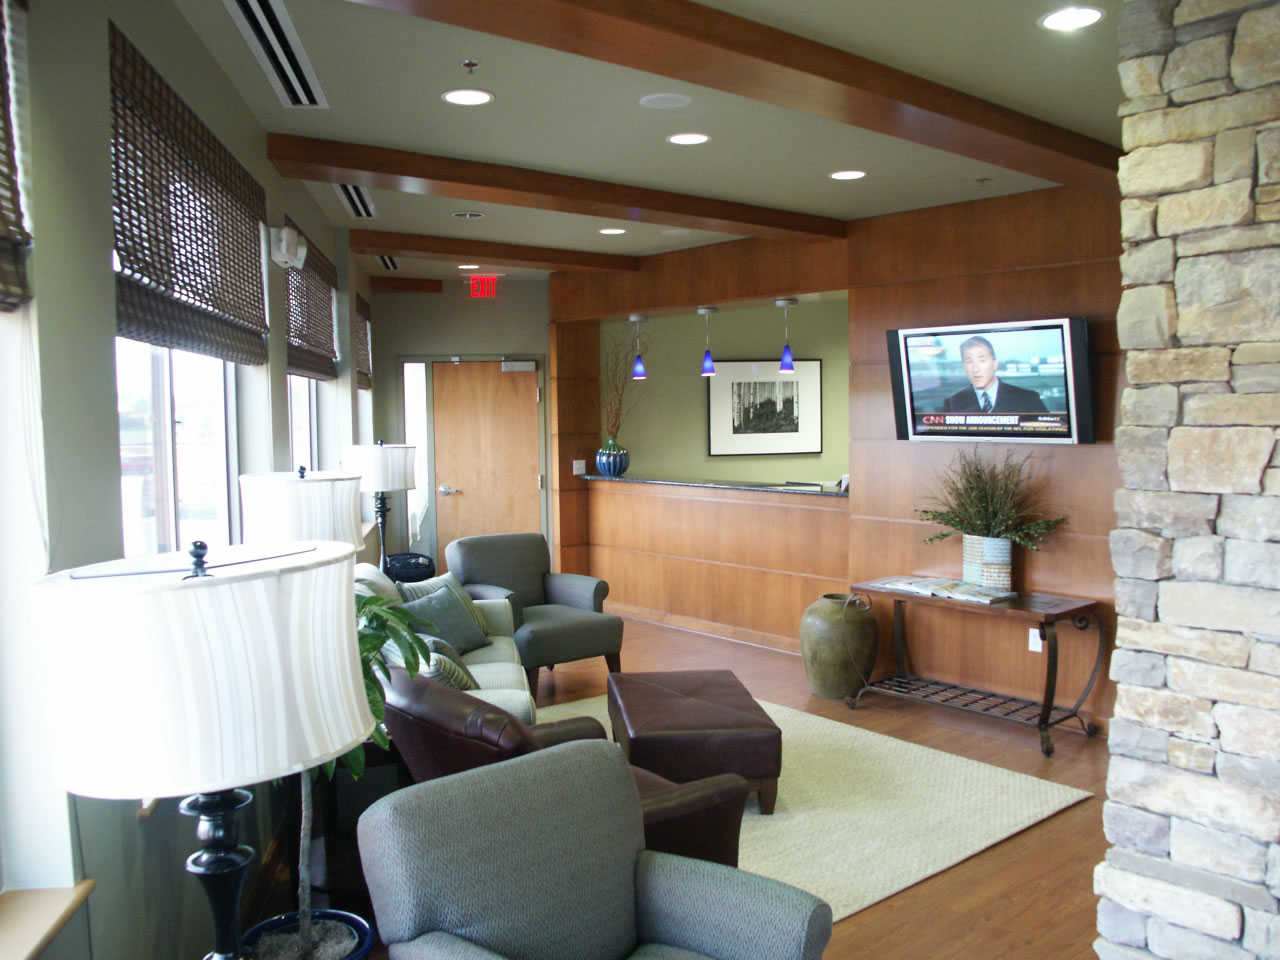 Ashbrook Center for Dentistry - Waiting Room